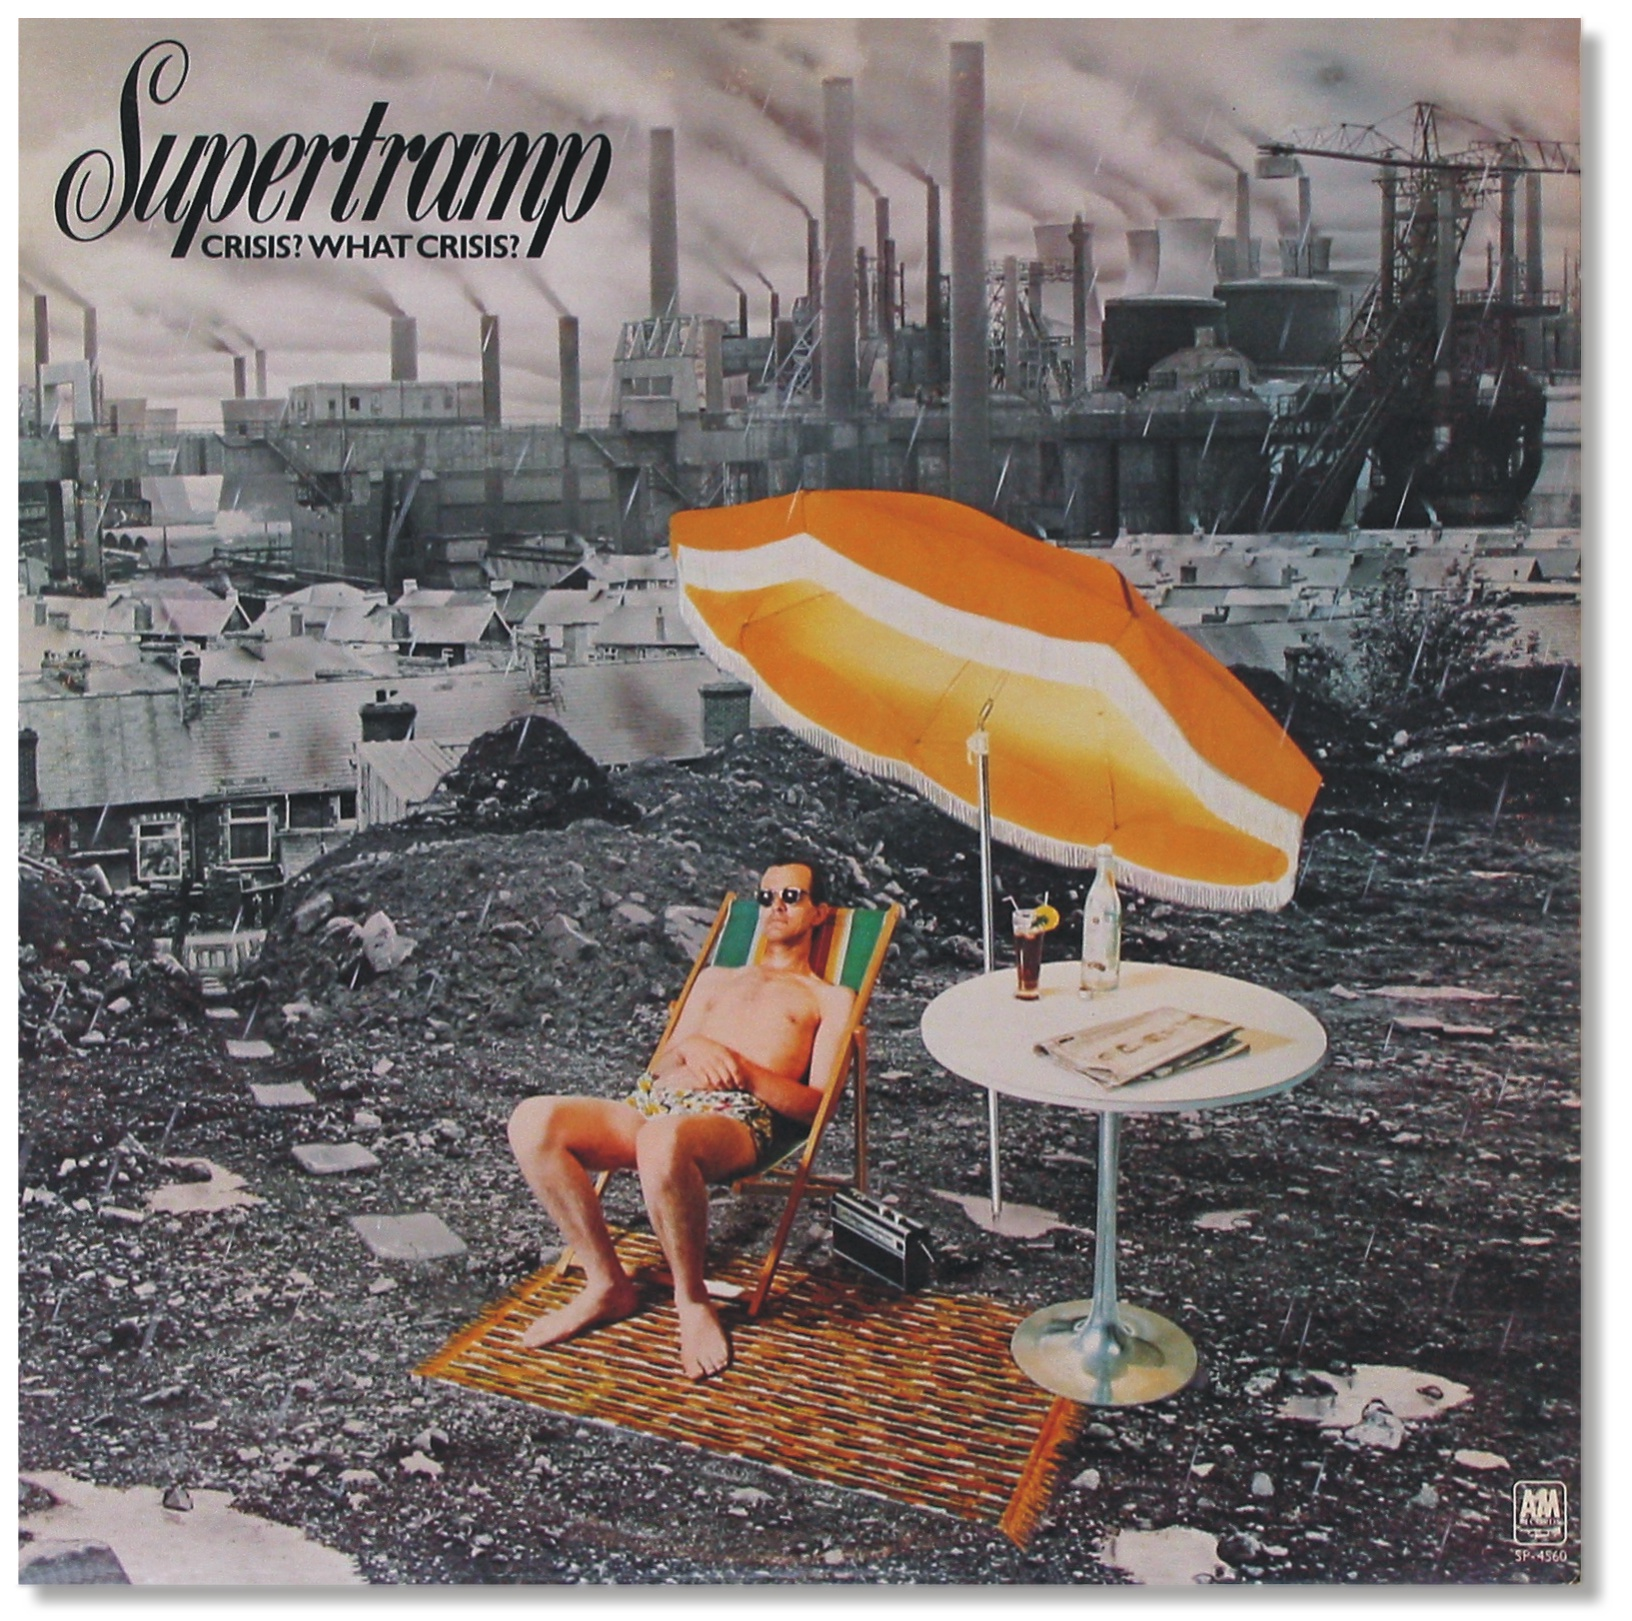 Krise? Welche Krise? | Plattencover. Supertramp, 1975. Crisis? What Crisis?